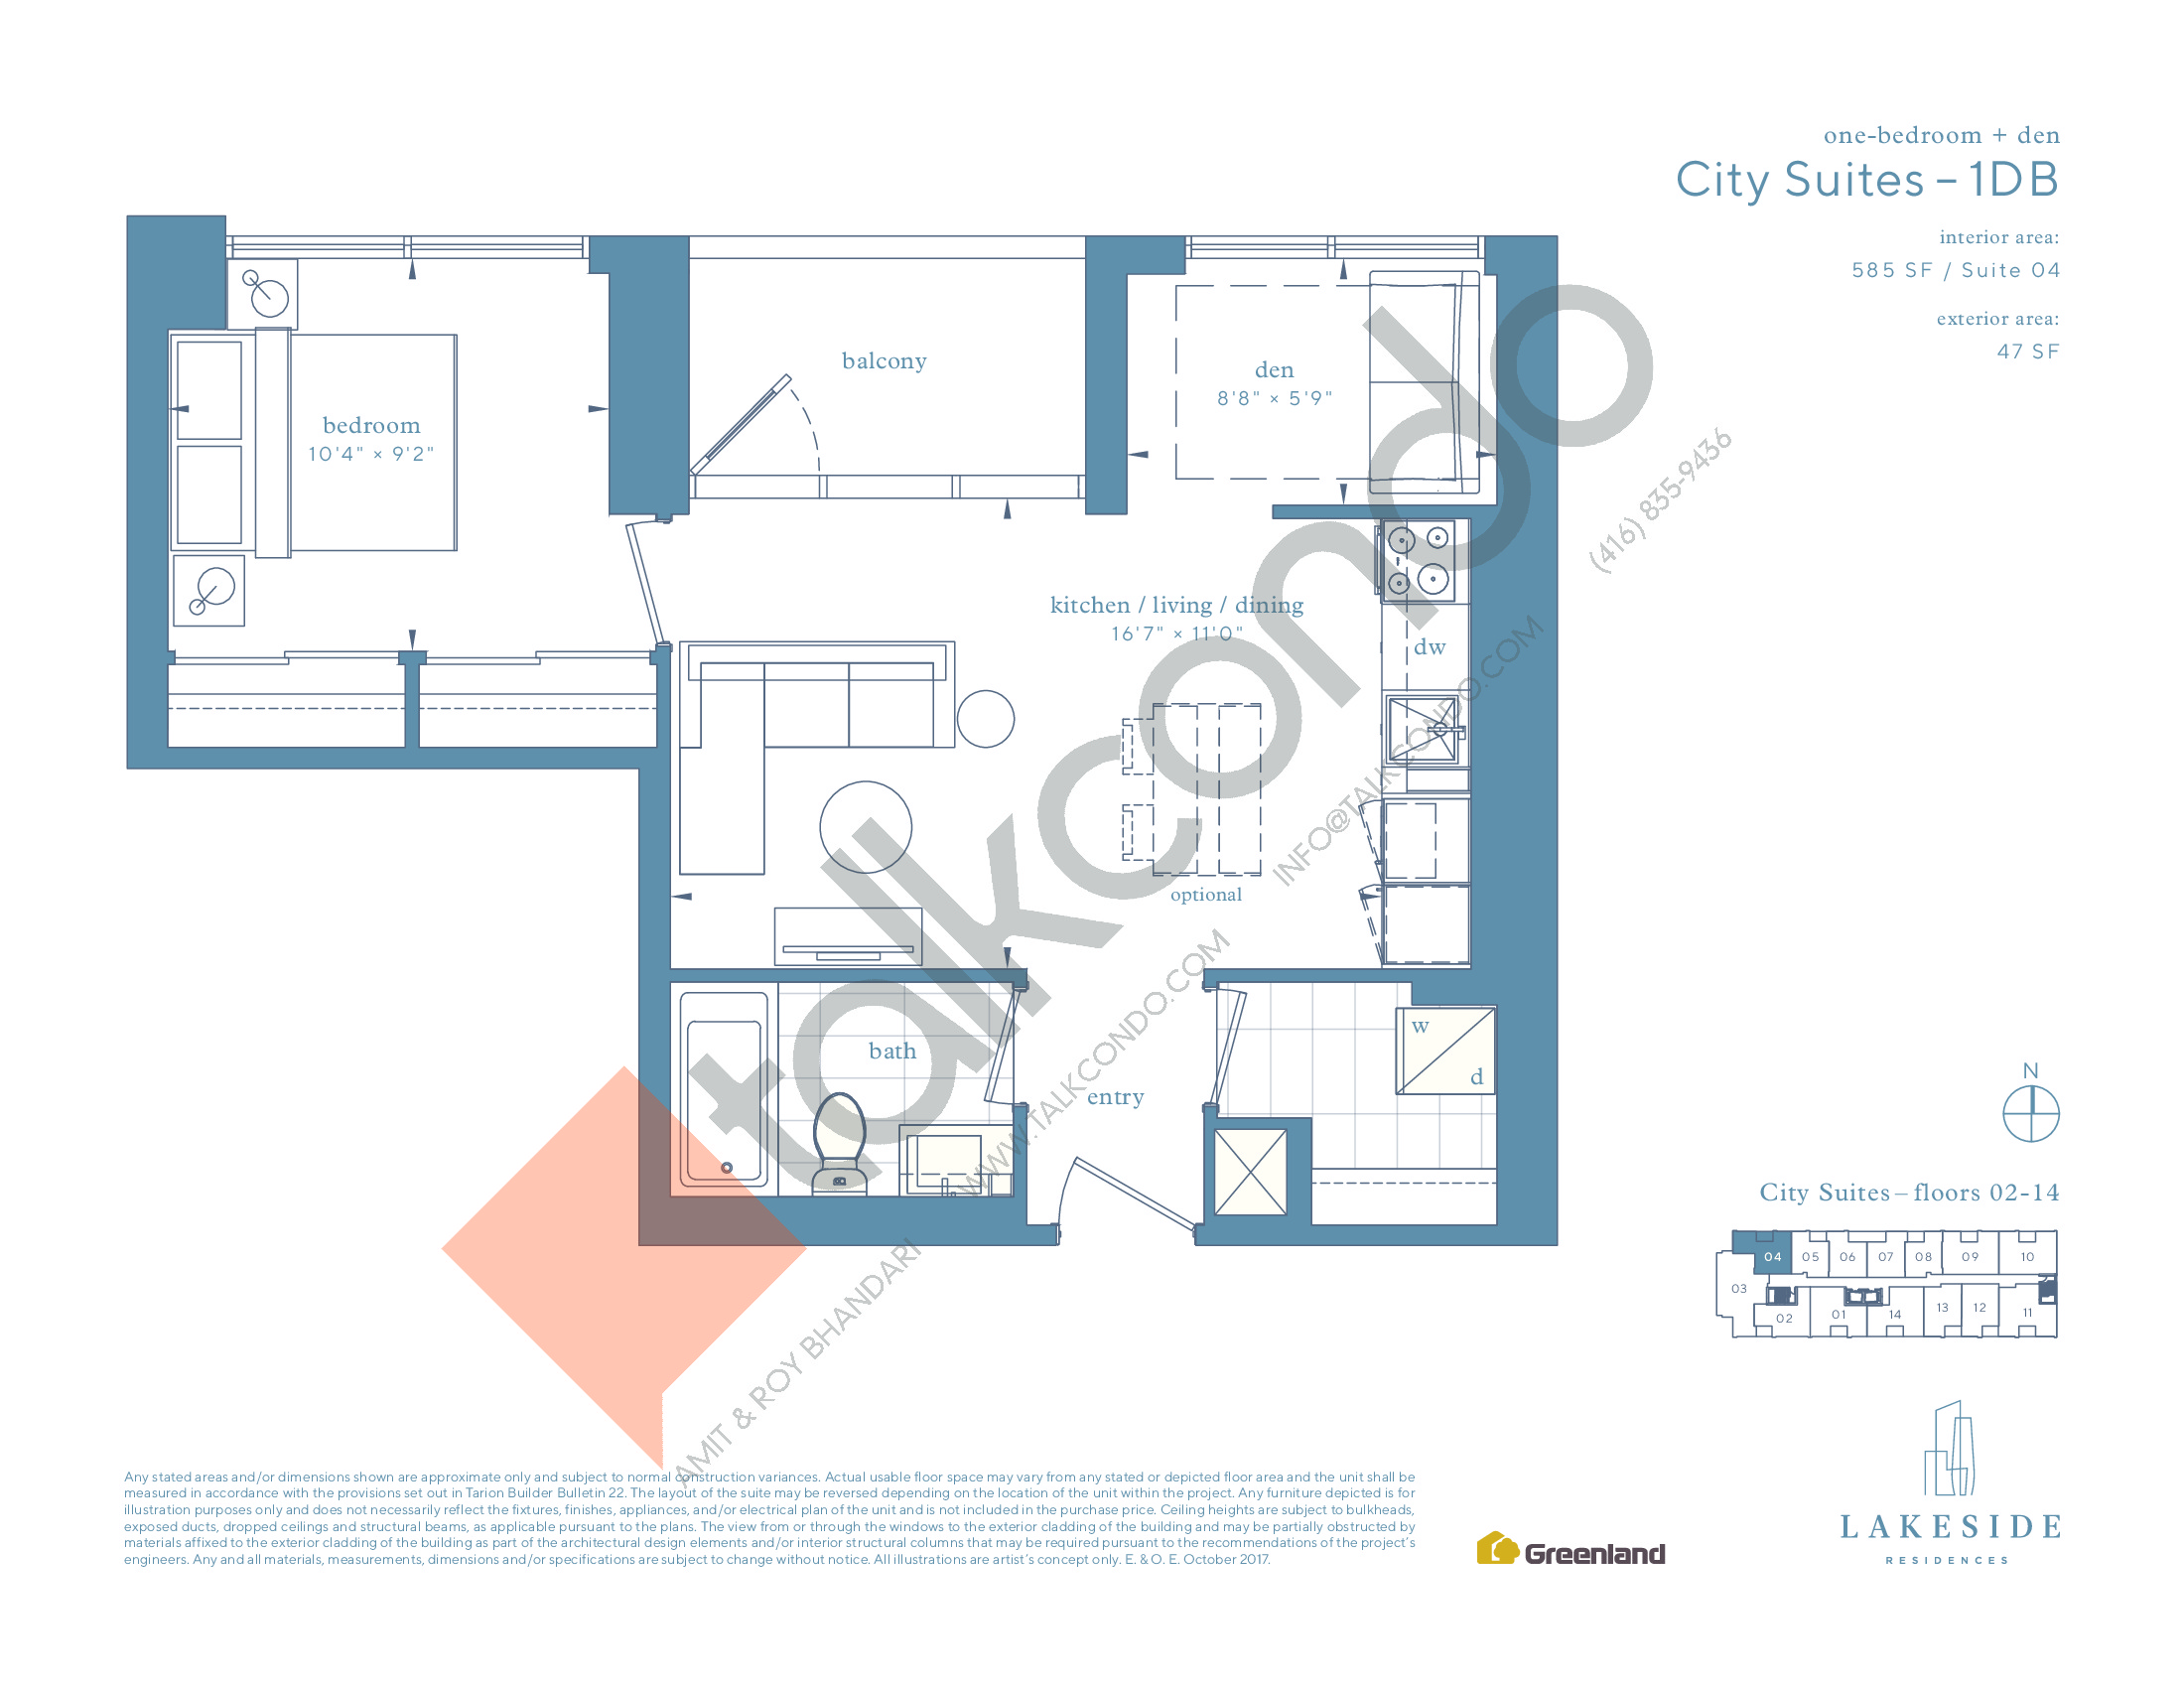 City Suites - 1DB Floor Plan at Lakeside Residences - 585 sq.ft